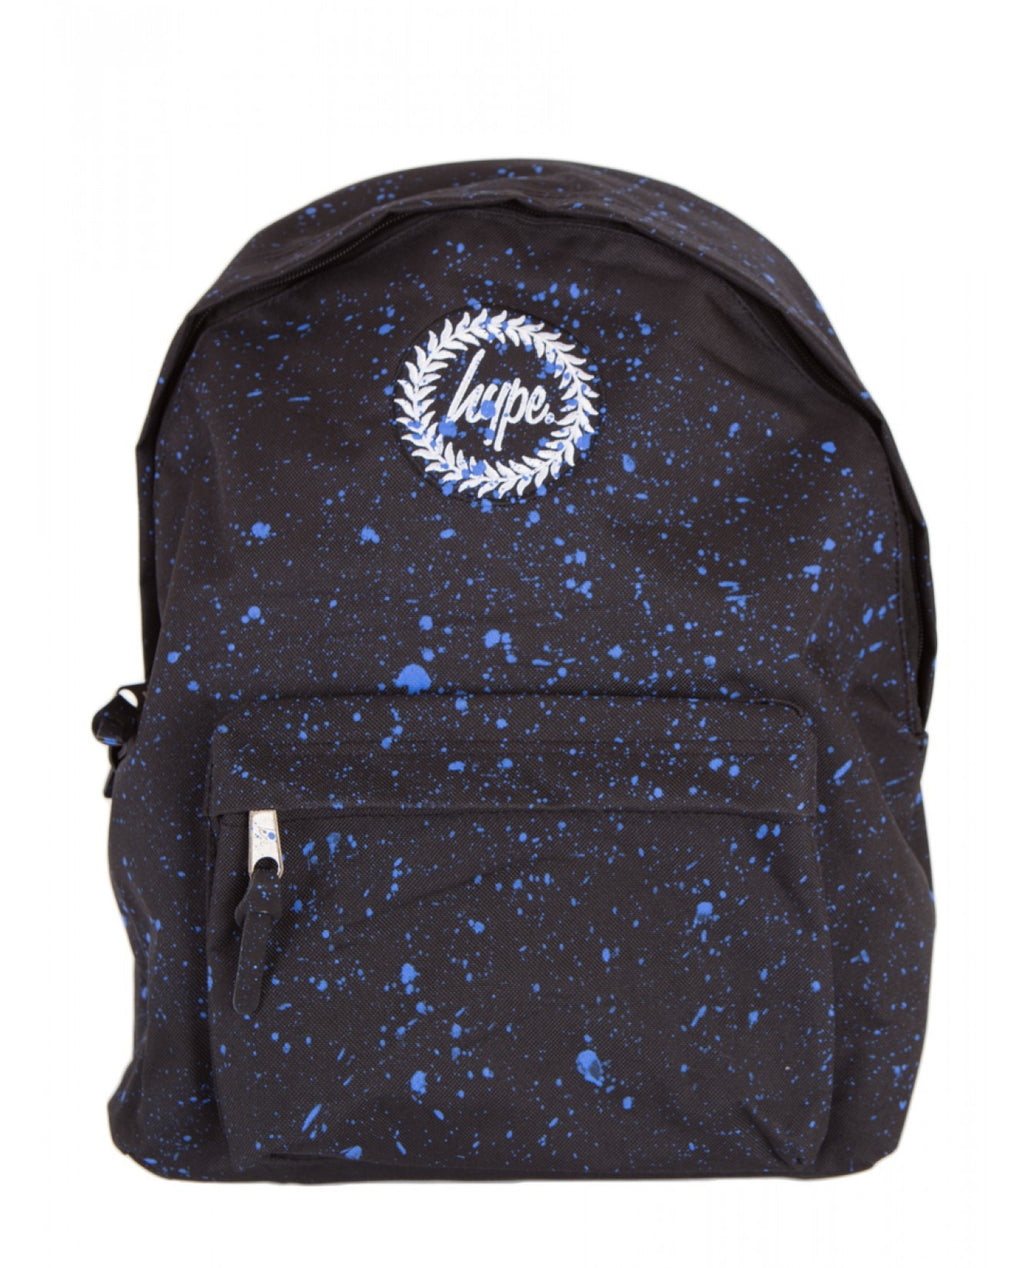 HYPE SPECKLE BACKPACK RUCKSACK BAG - BLACK/NAVY